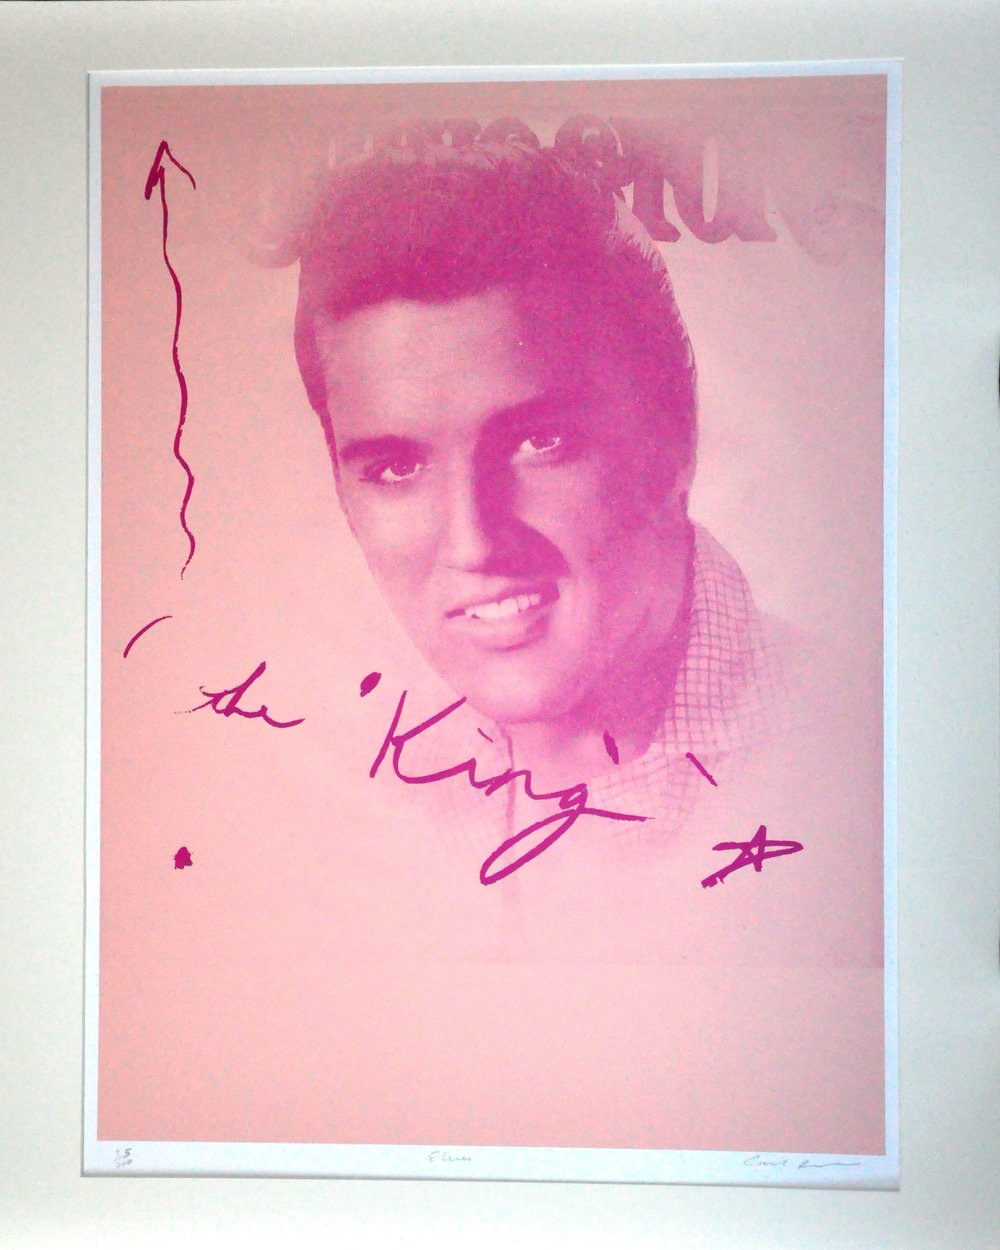 "Elvis,  2000, Carl Beam, serigraph on paper, edition 35/200, 30"" x 20"", 2006.05.01, gift of the Milton Winberg Foundation"